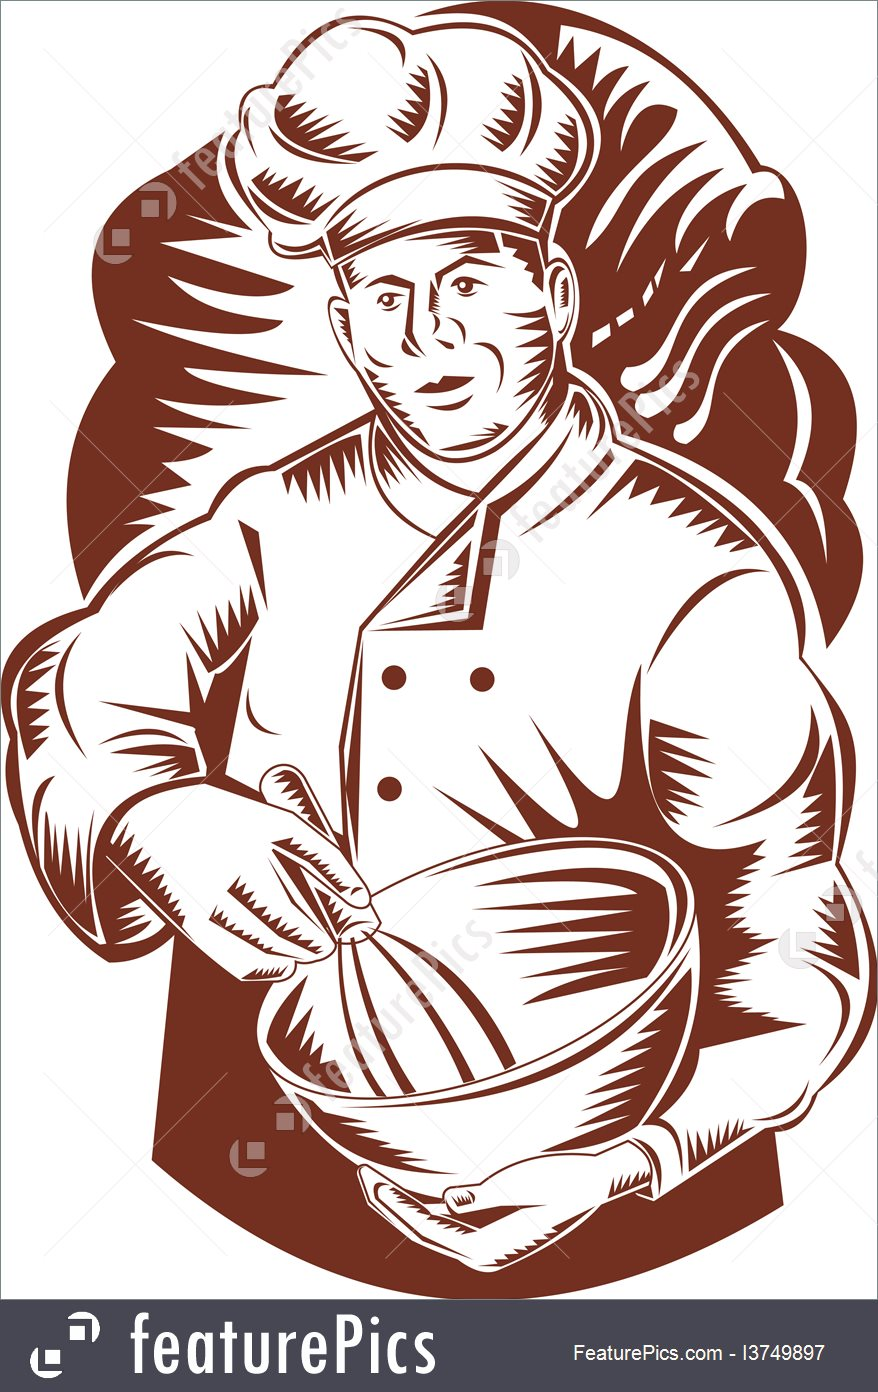 878x1392 People At Work Chef Holding Mixing Bowl